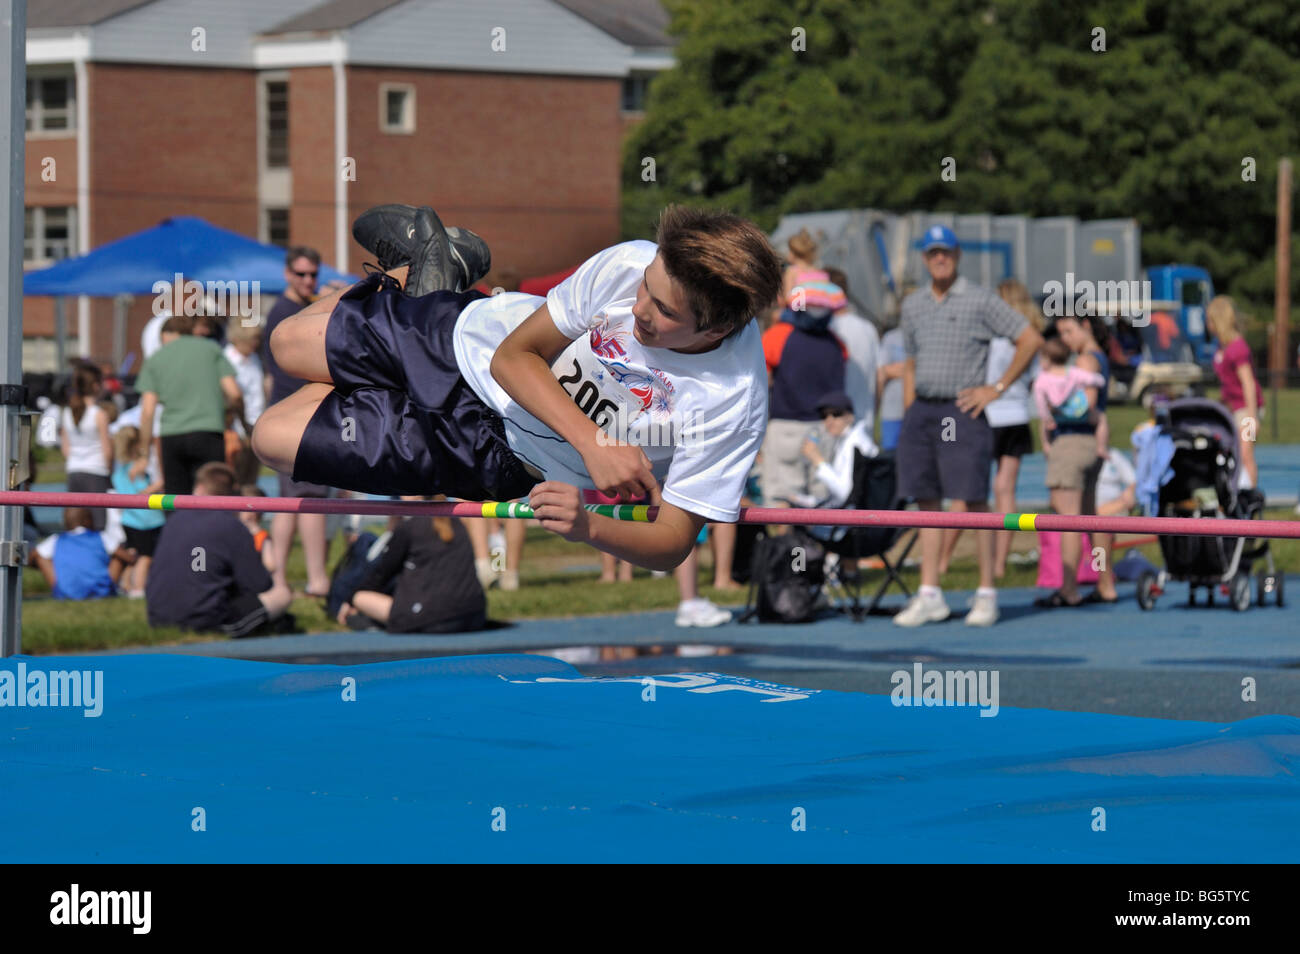 Teenage boy high jumper clearing the bar at the Track and Field competition during the Bluegrass State Games - Stock Image